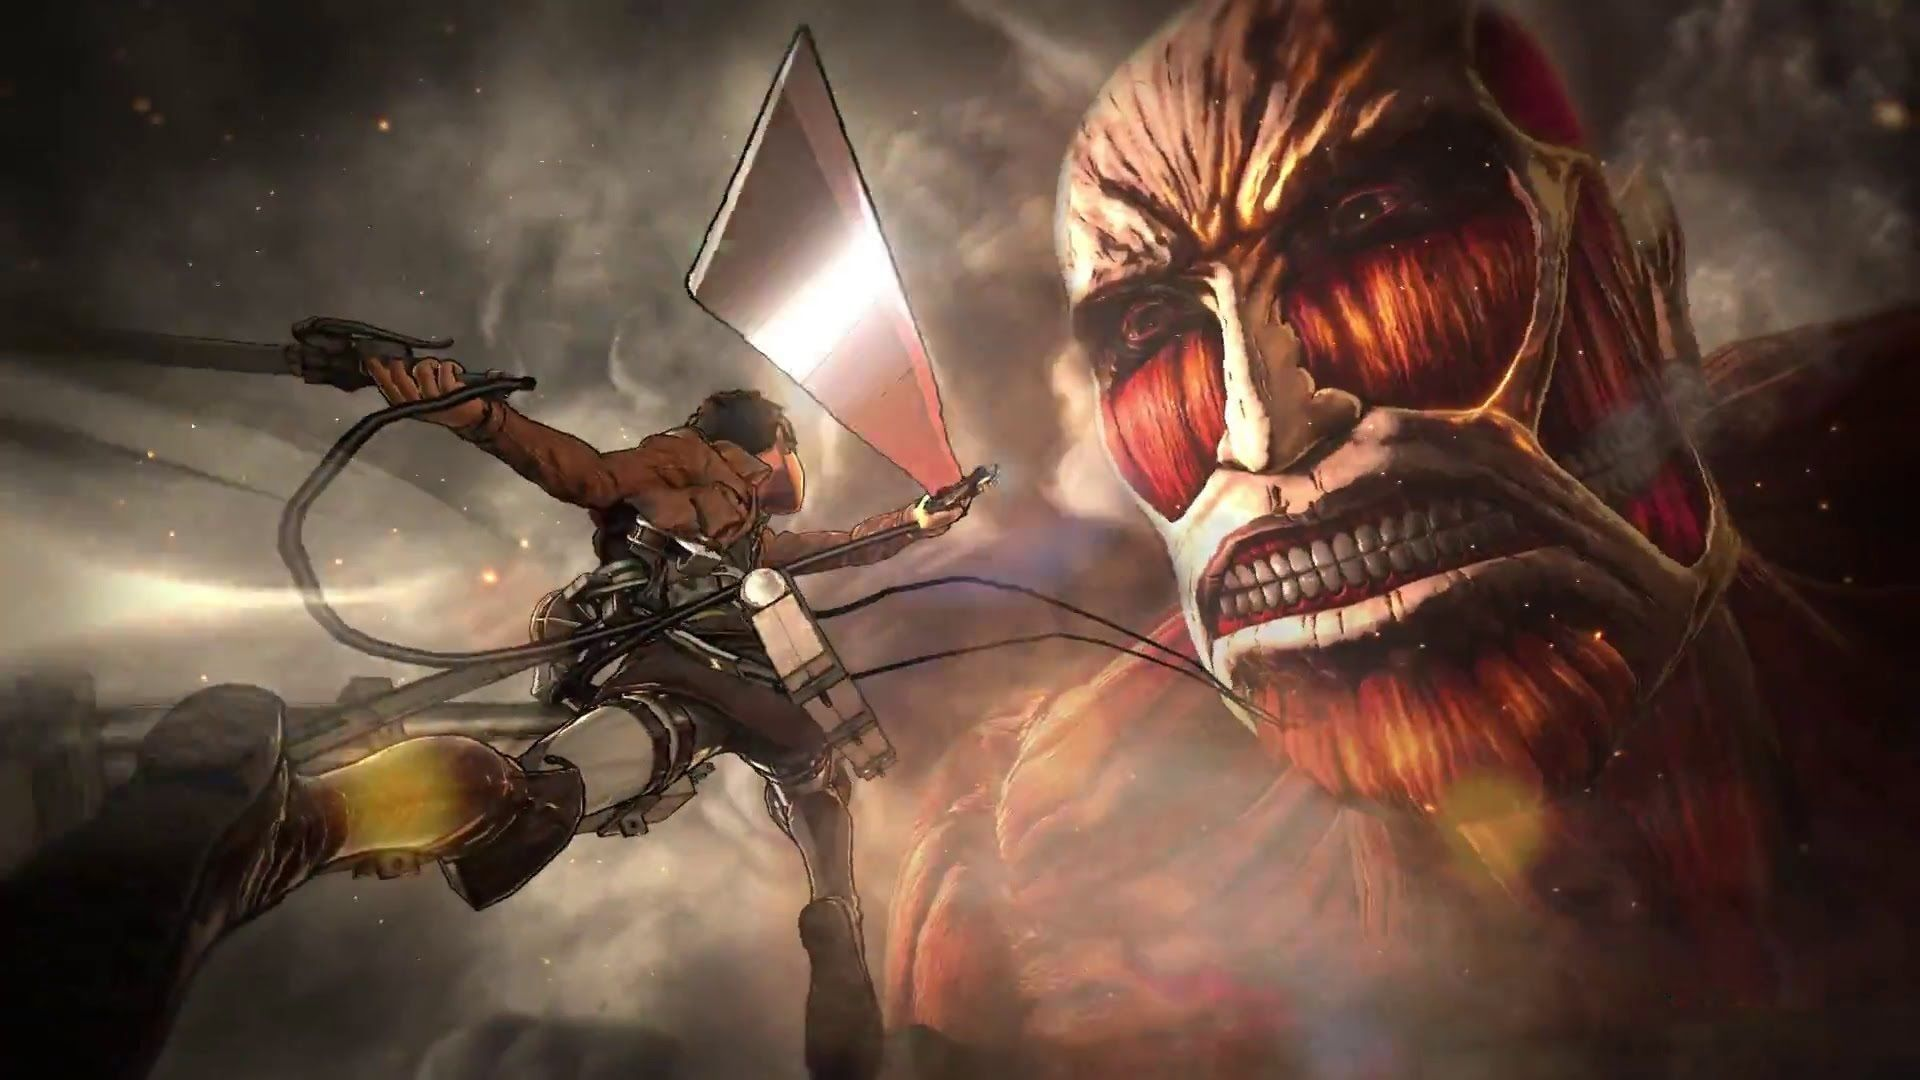 Attack On Titan Aesthetic Ps4 Wallpapers Wallpaper Cave